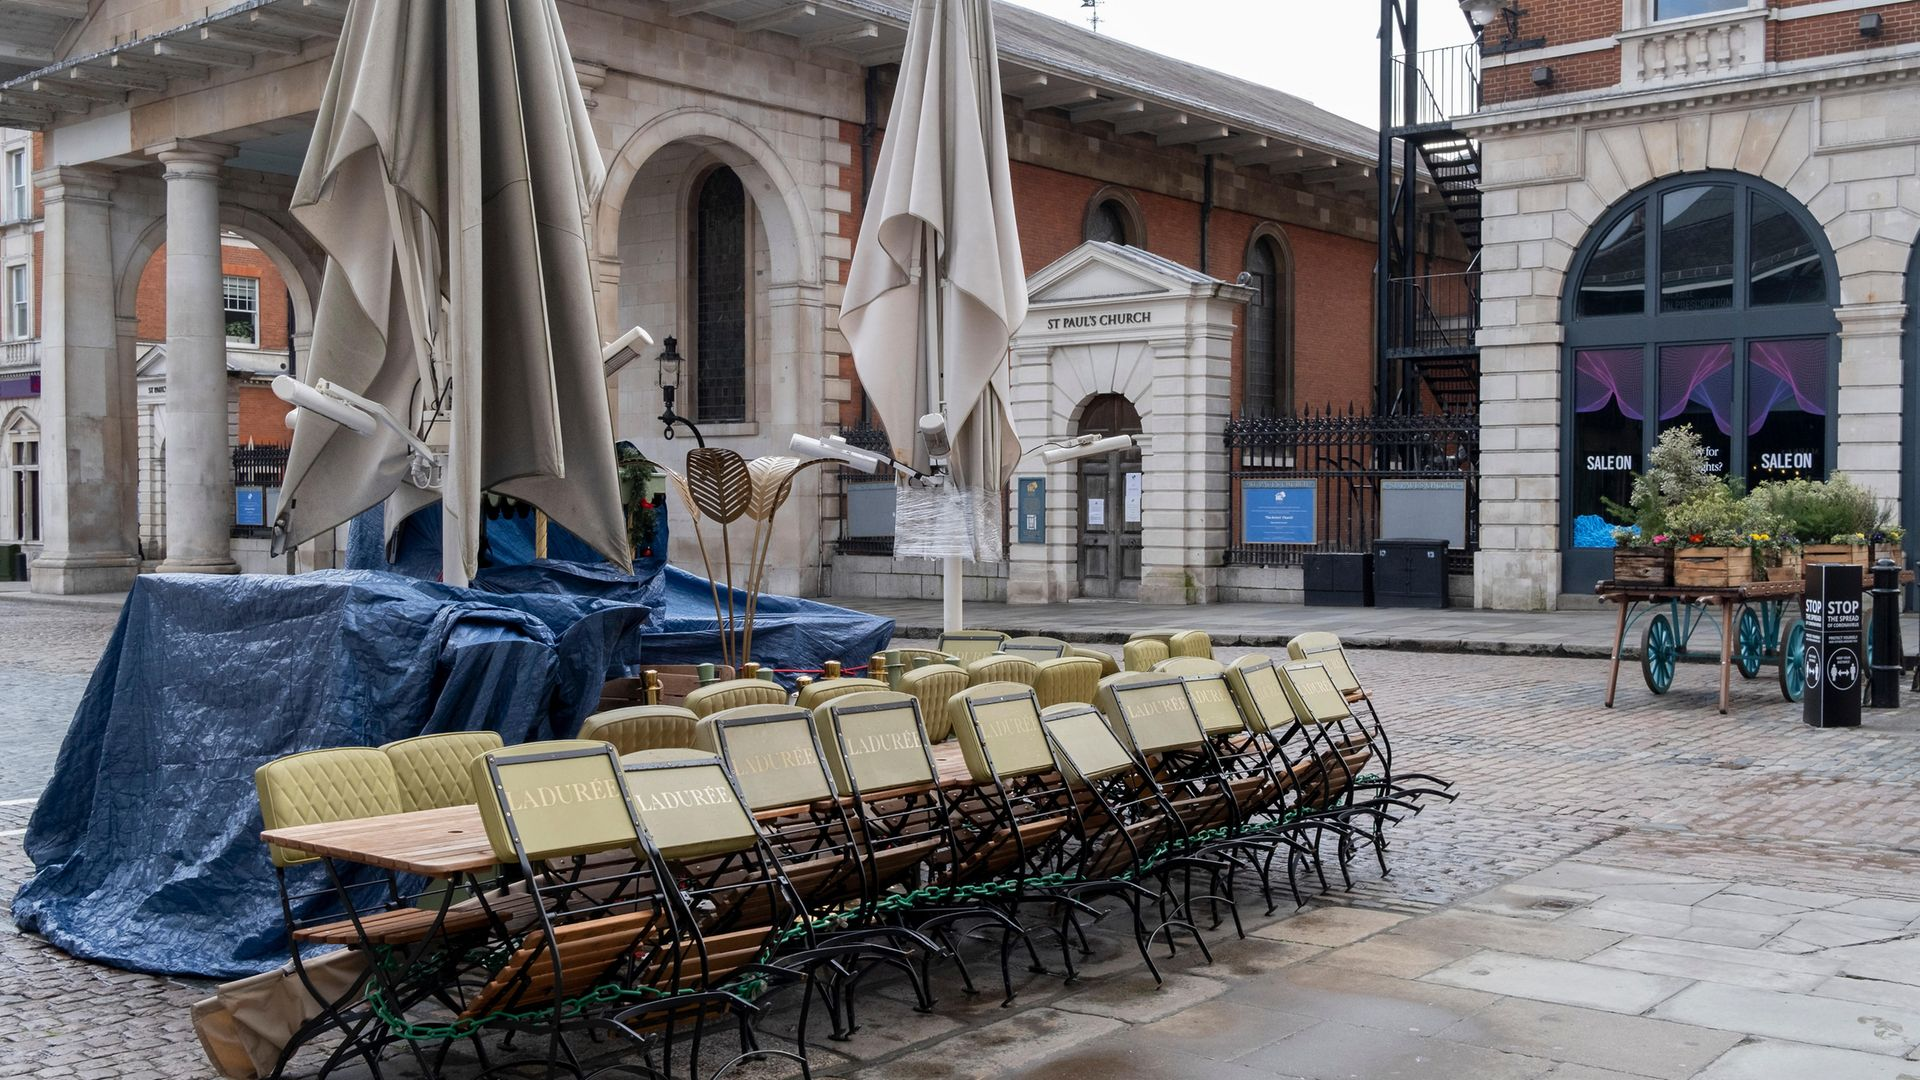 Tables and chairs from a closed restaurant business are stacked and tied together in the Covent Garden Piazza - Credit: In Pictures via Getty Images